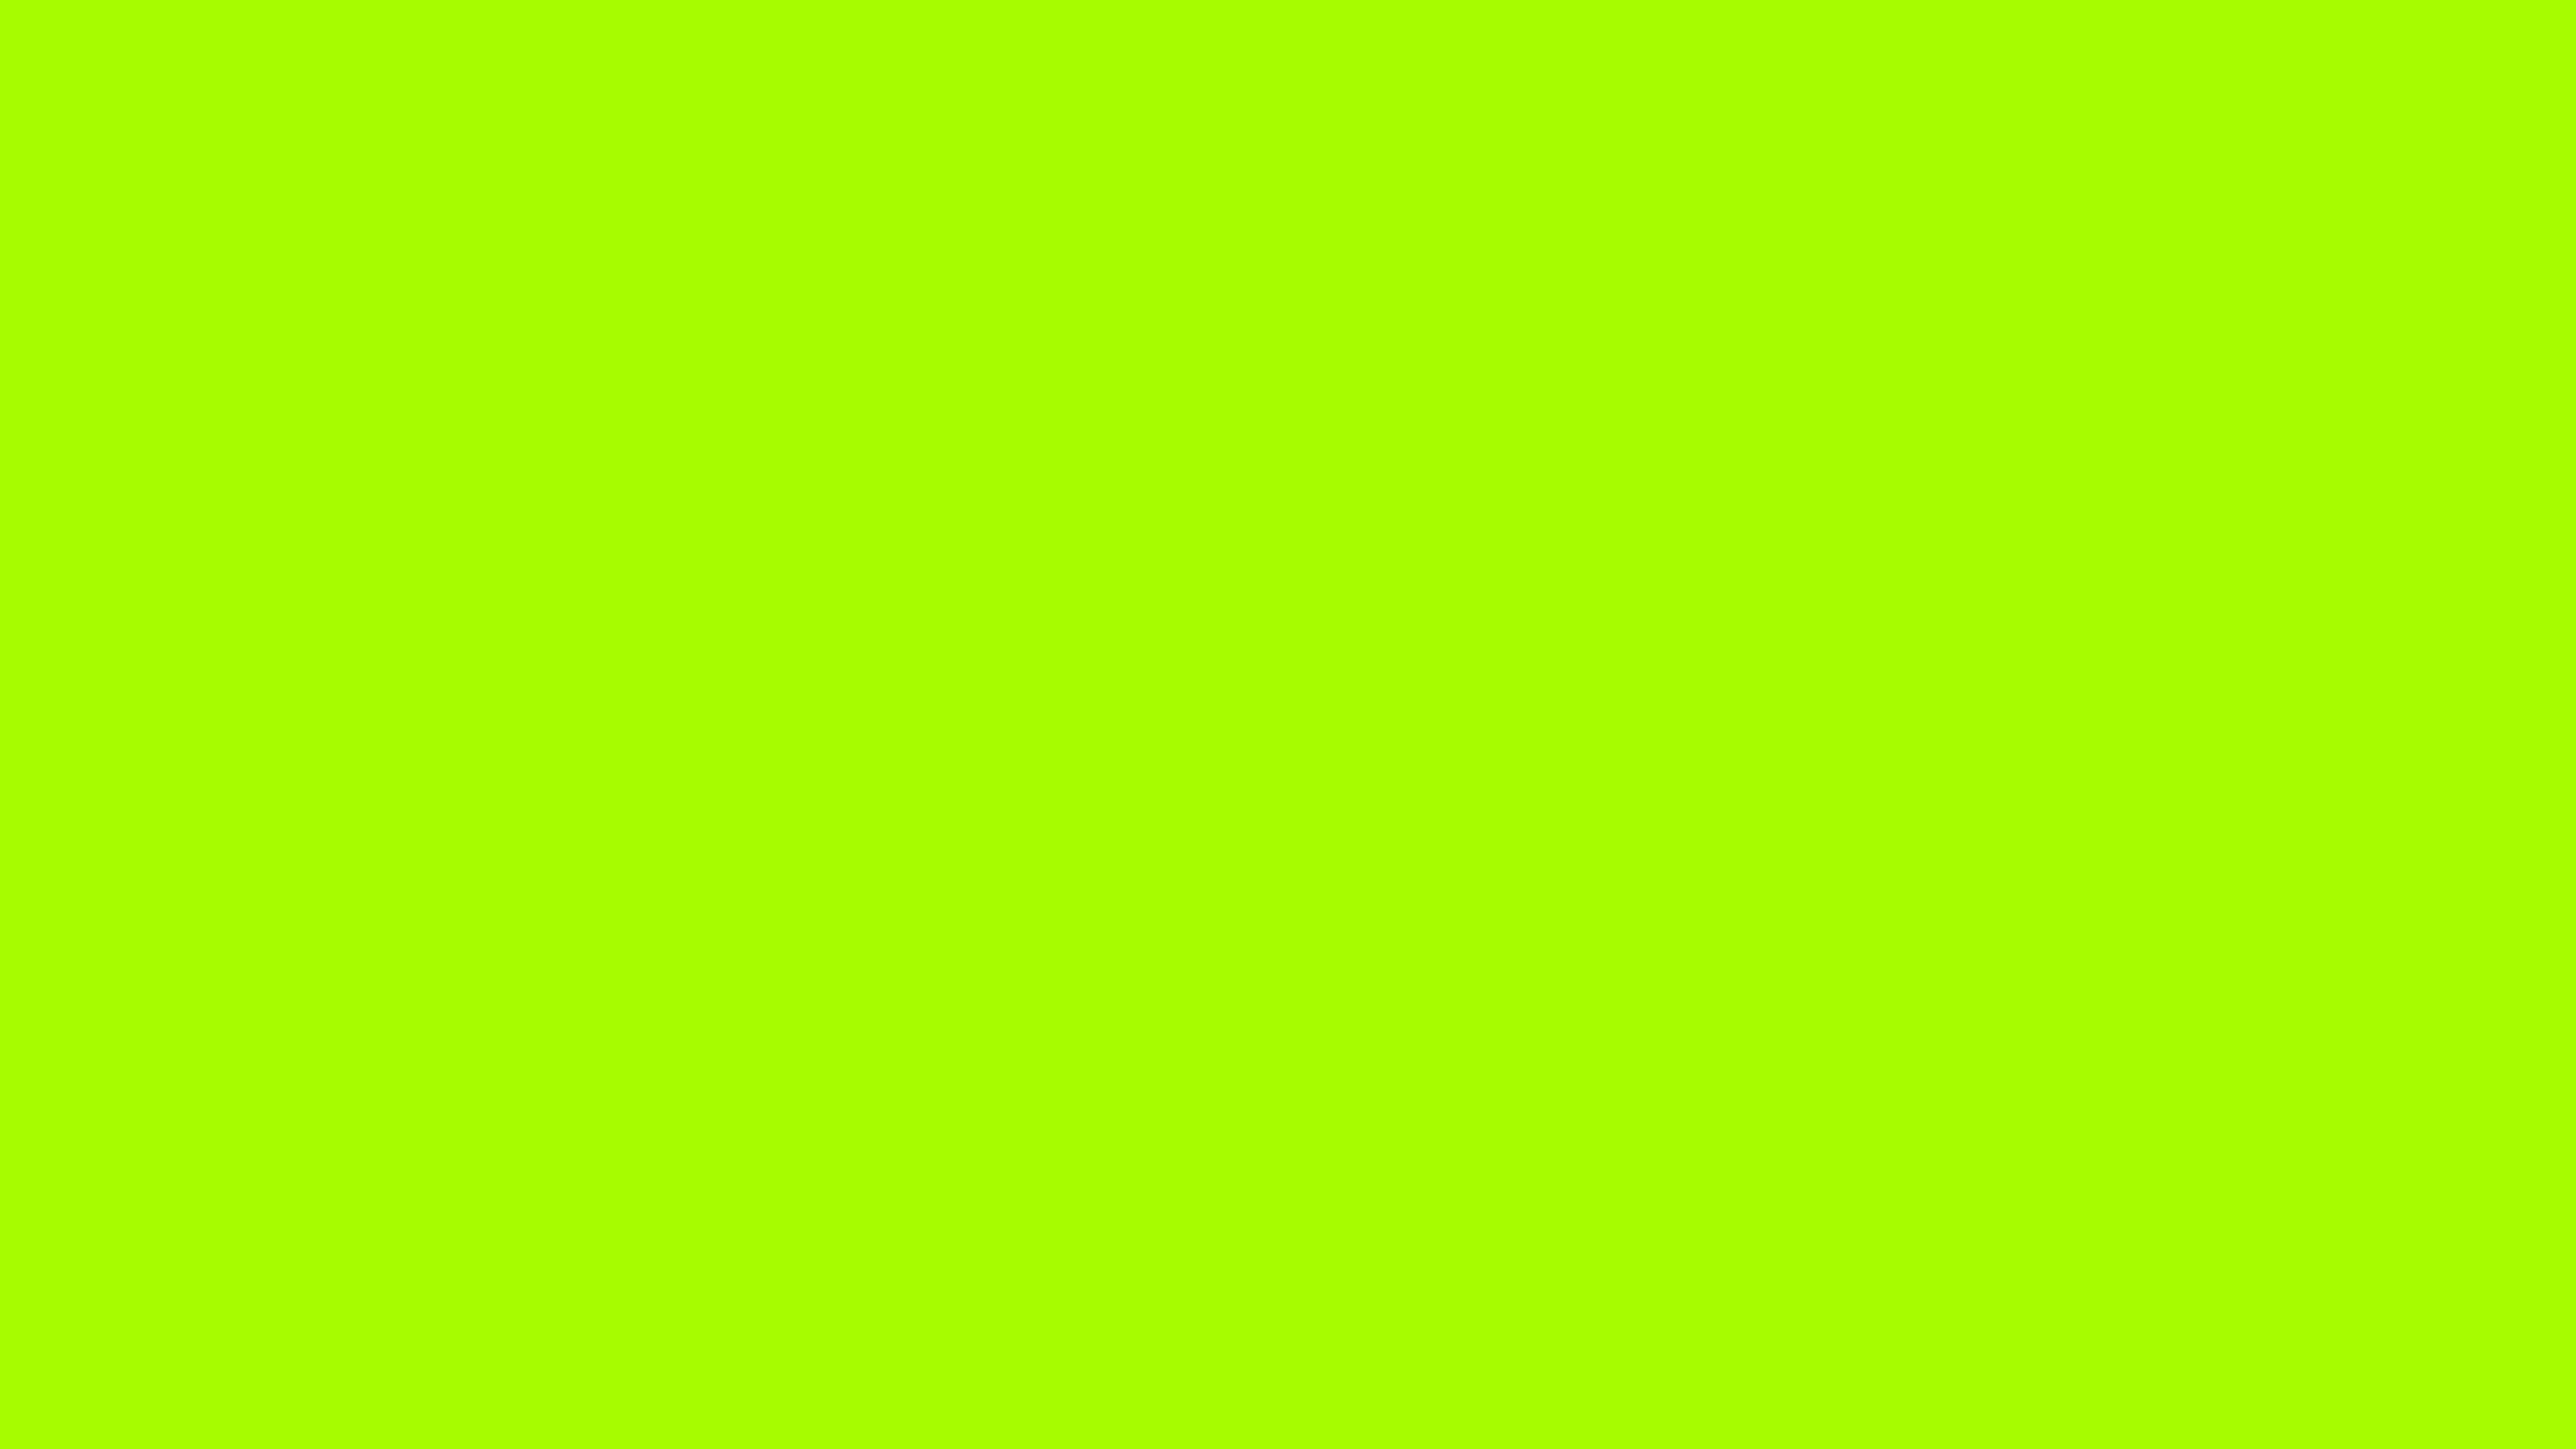 4096x2304 Spring Bud Solid Color Background